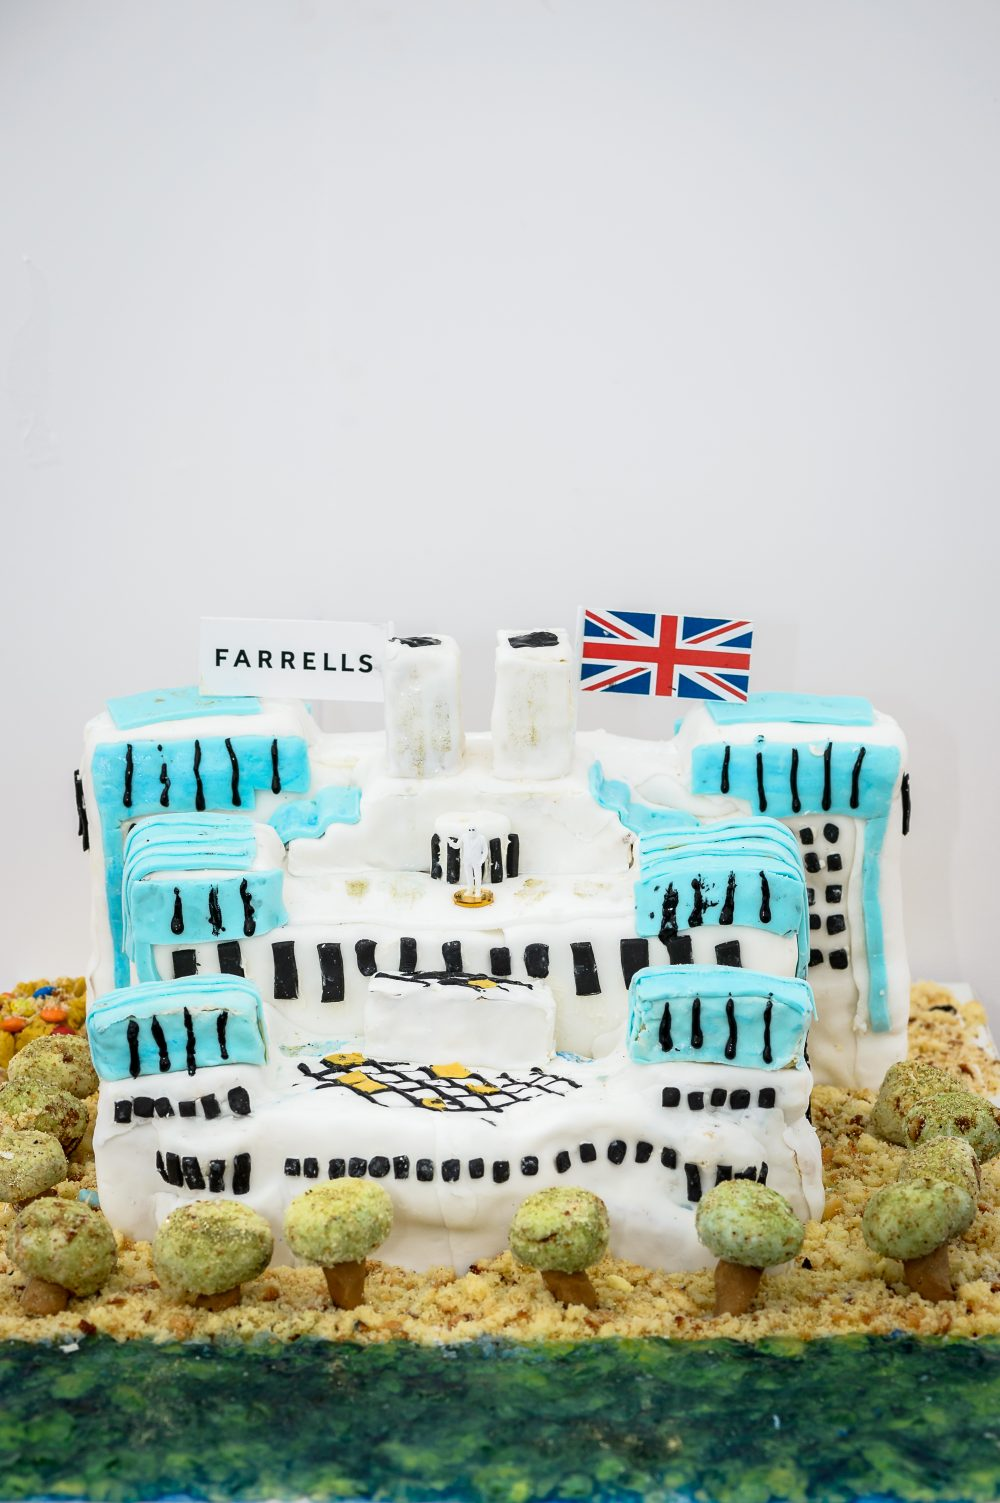 YES WATG's Great Architectural Bake Off 2018 - MI6 by Farrells © WATG